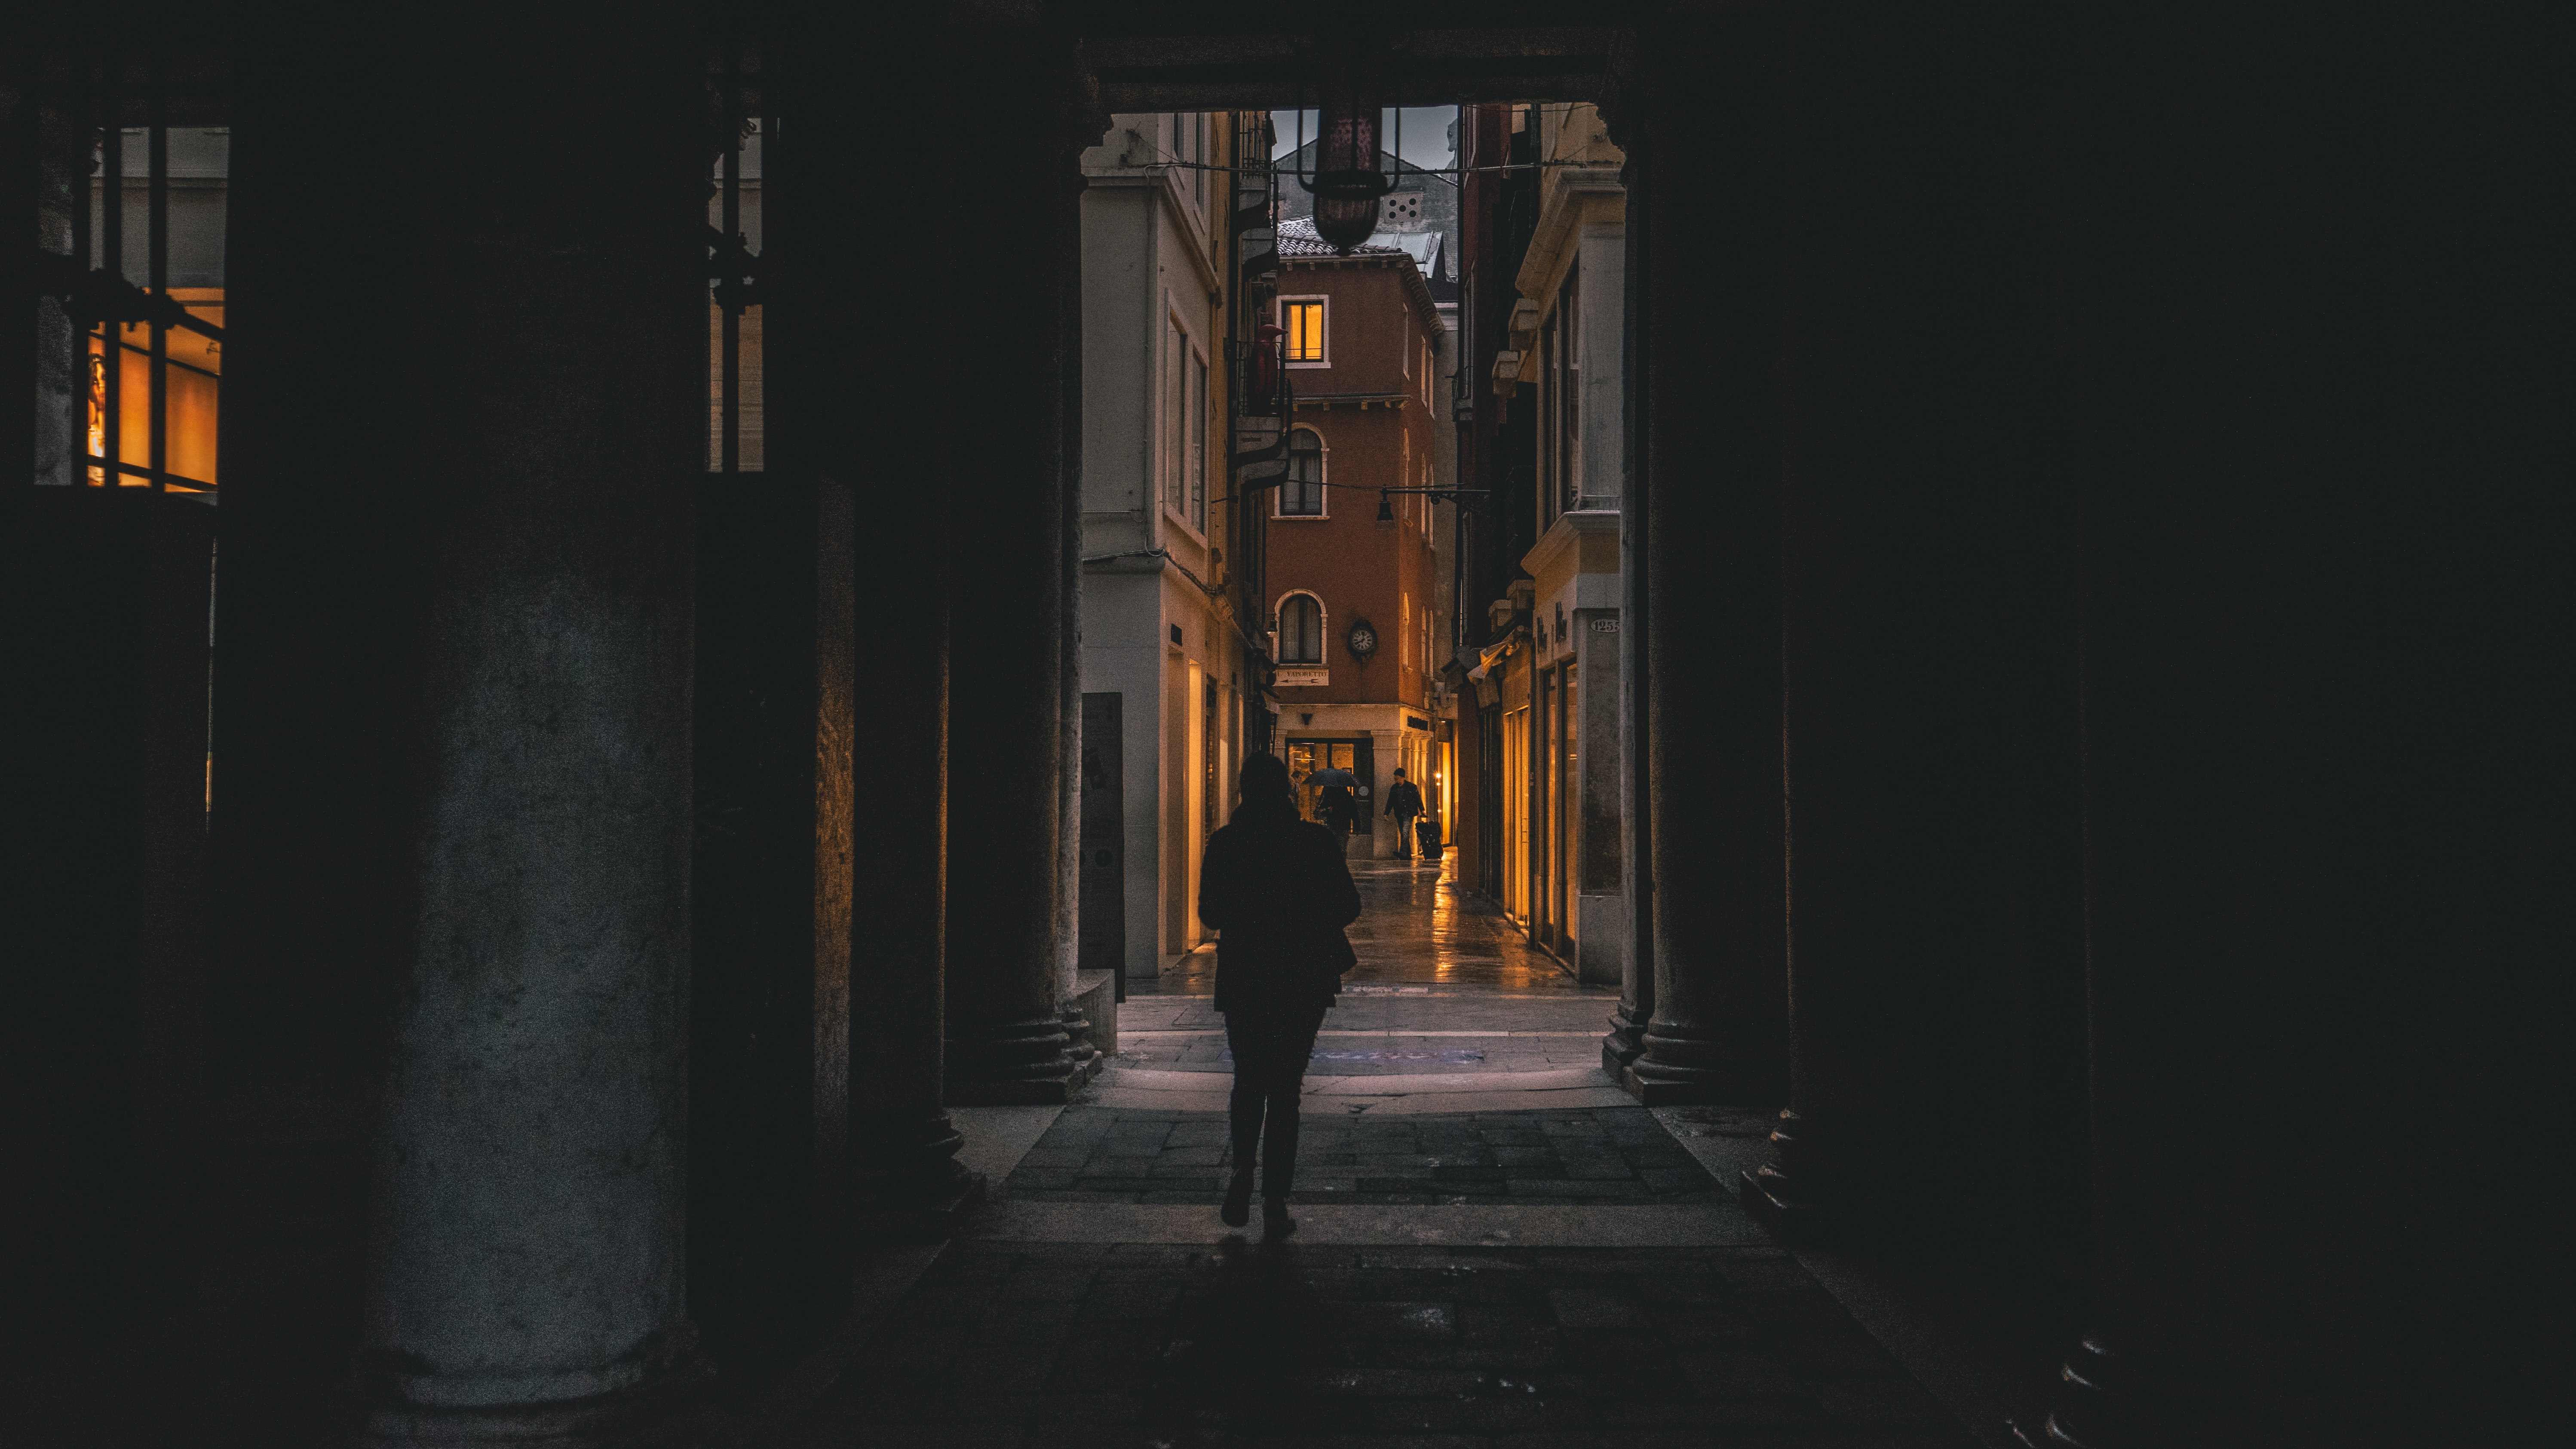 photography of person walking inside archway